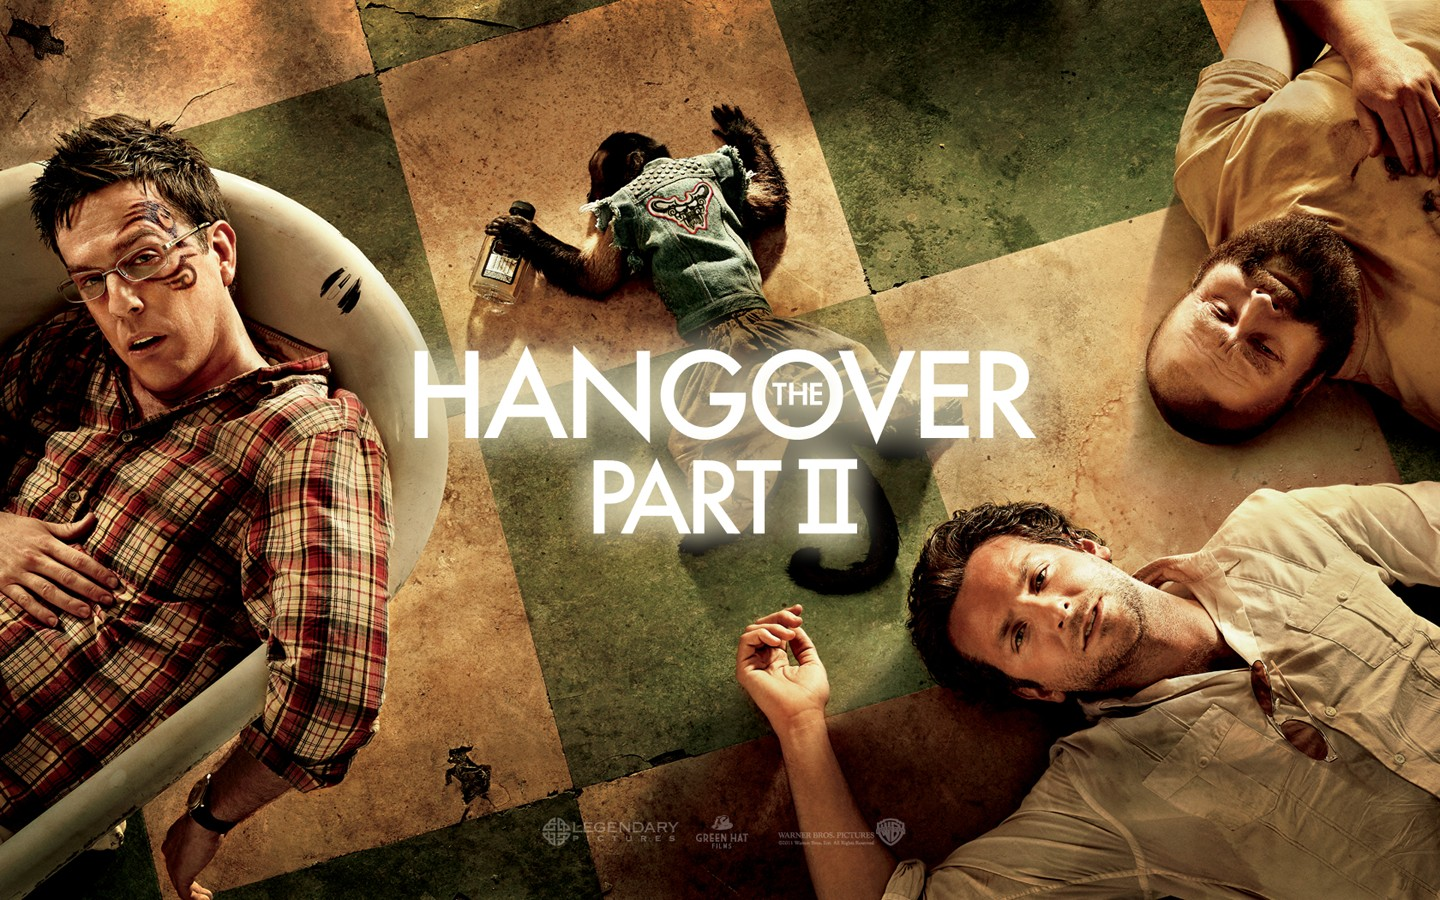 The Hangover Part II – A Really Unwanted Sequel For Me